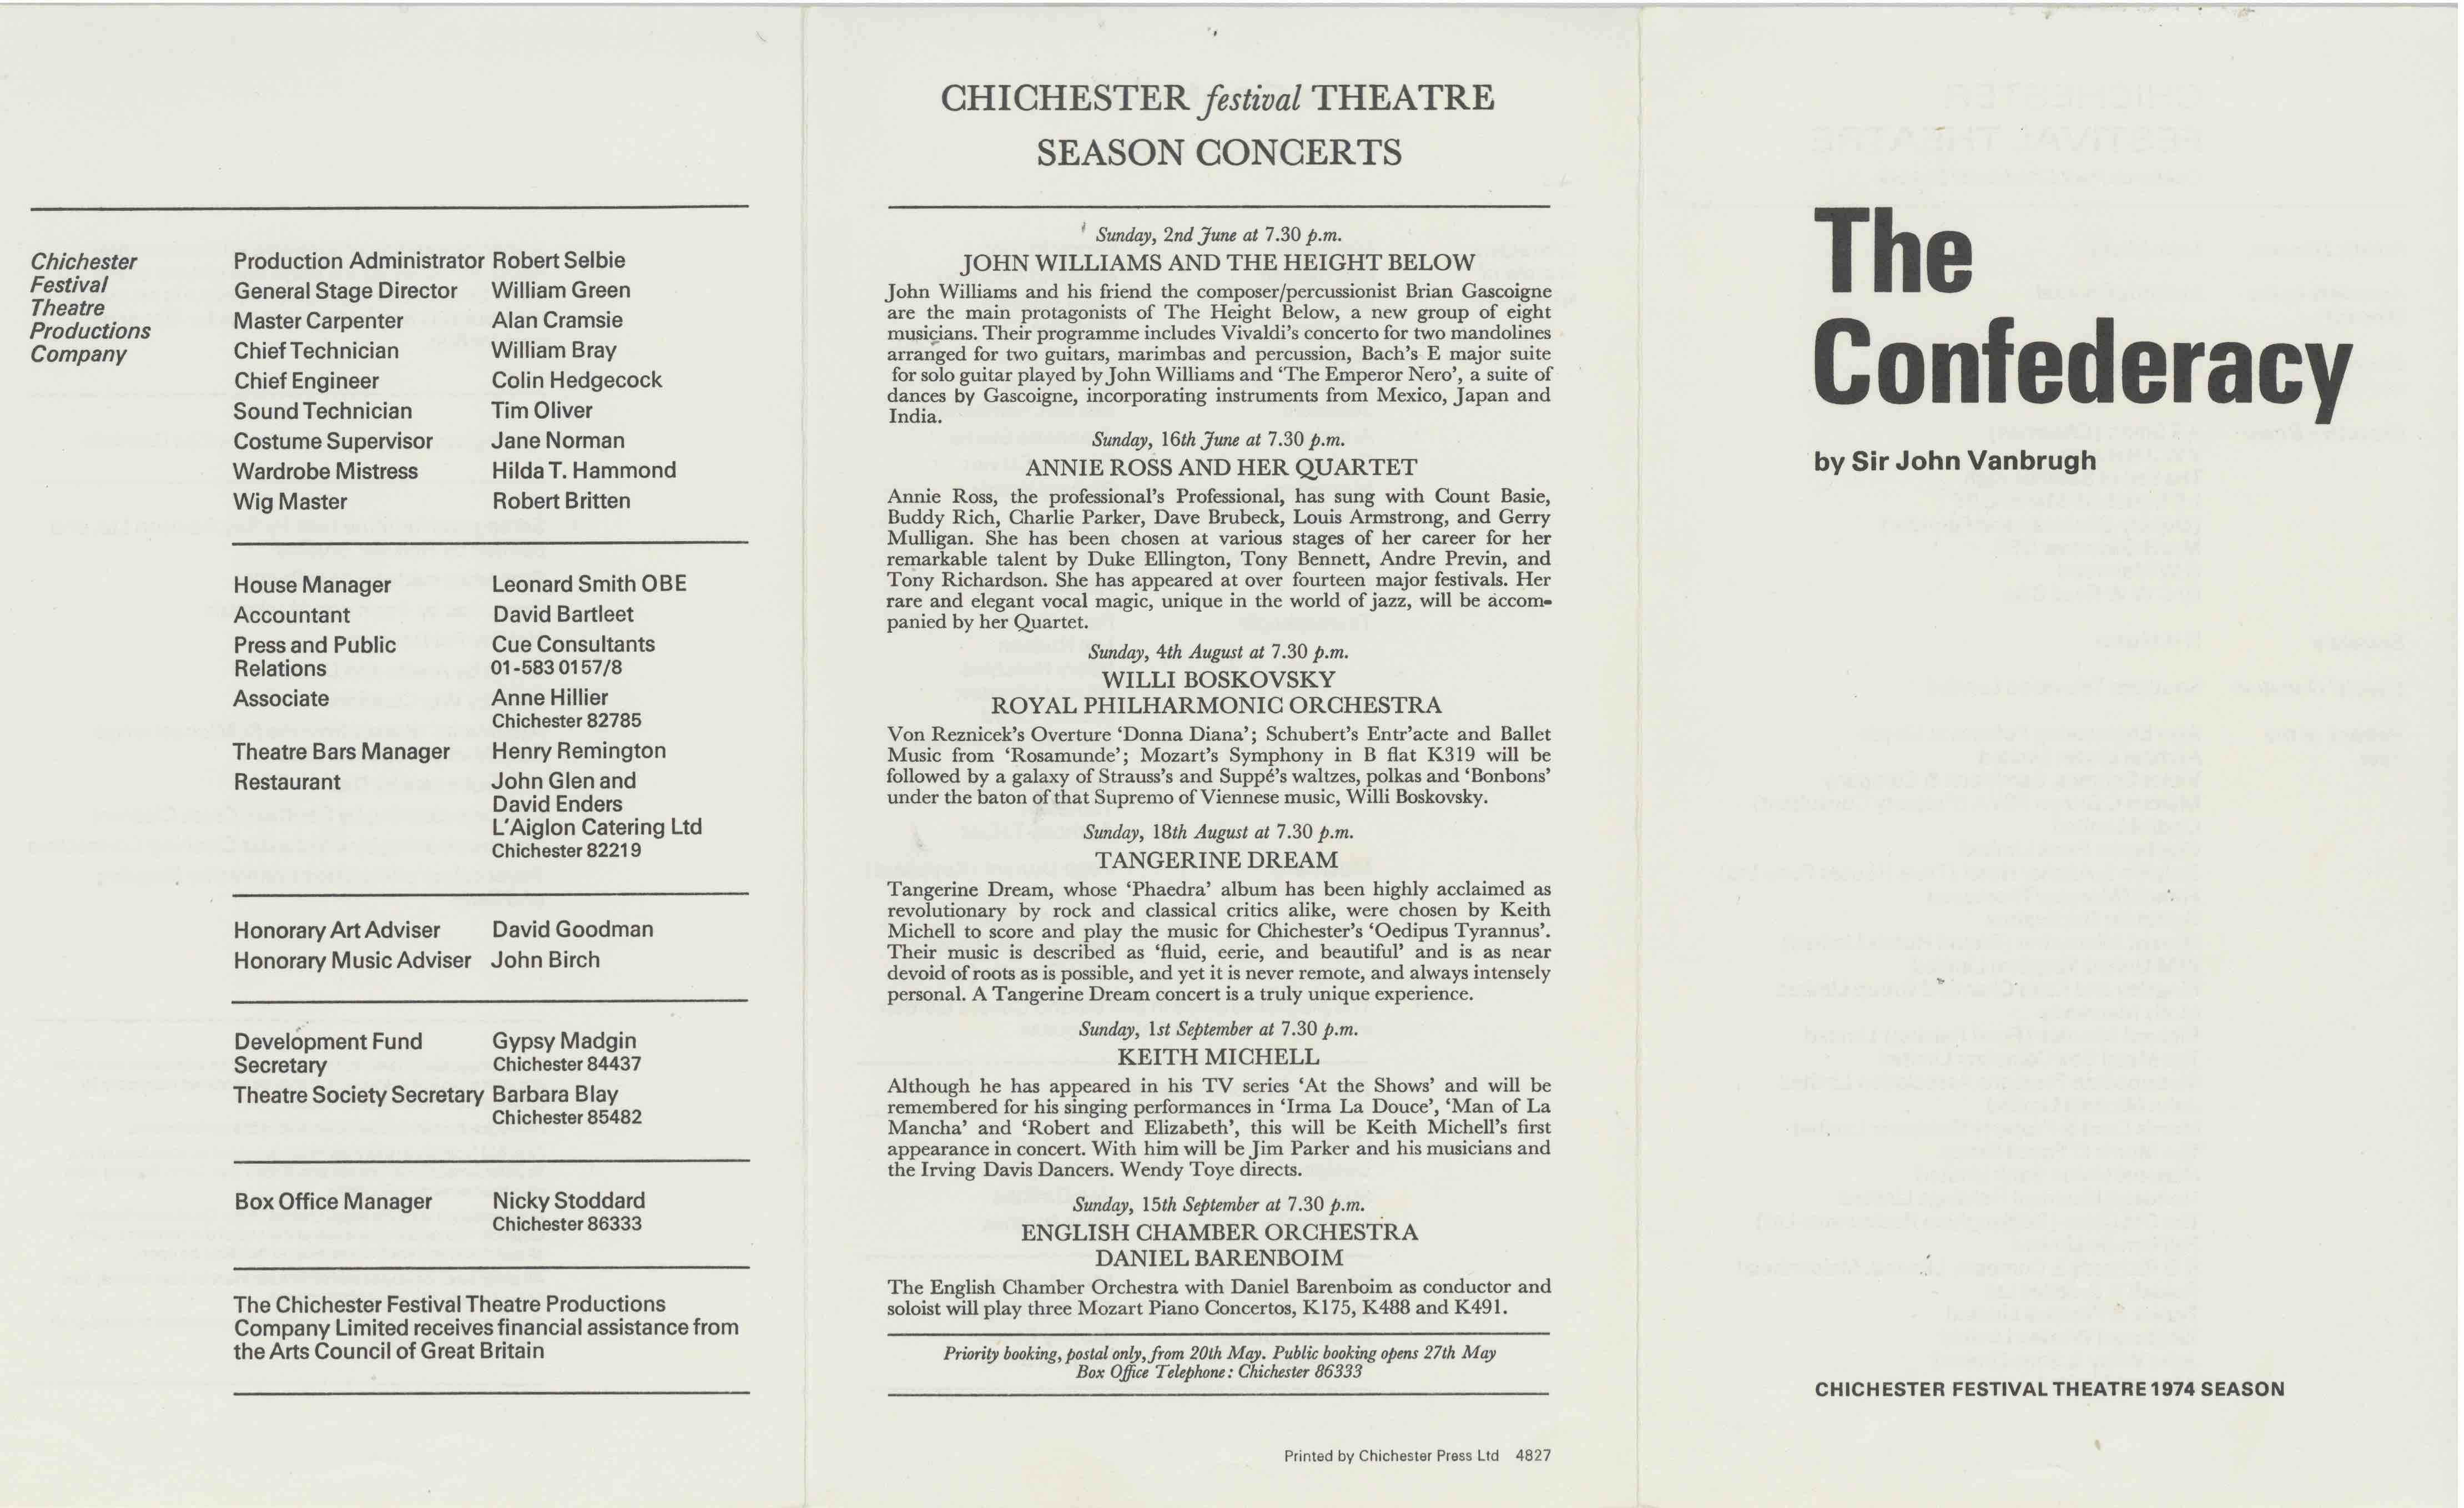 Cast List - The Confederacy  - 1974- 1 of 2